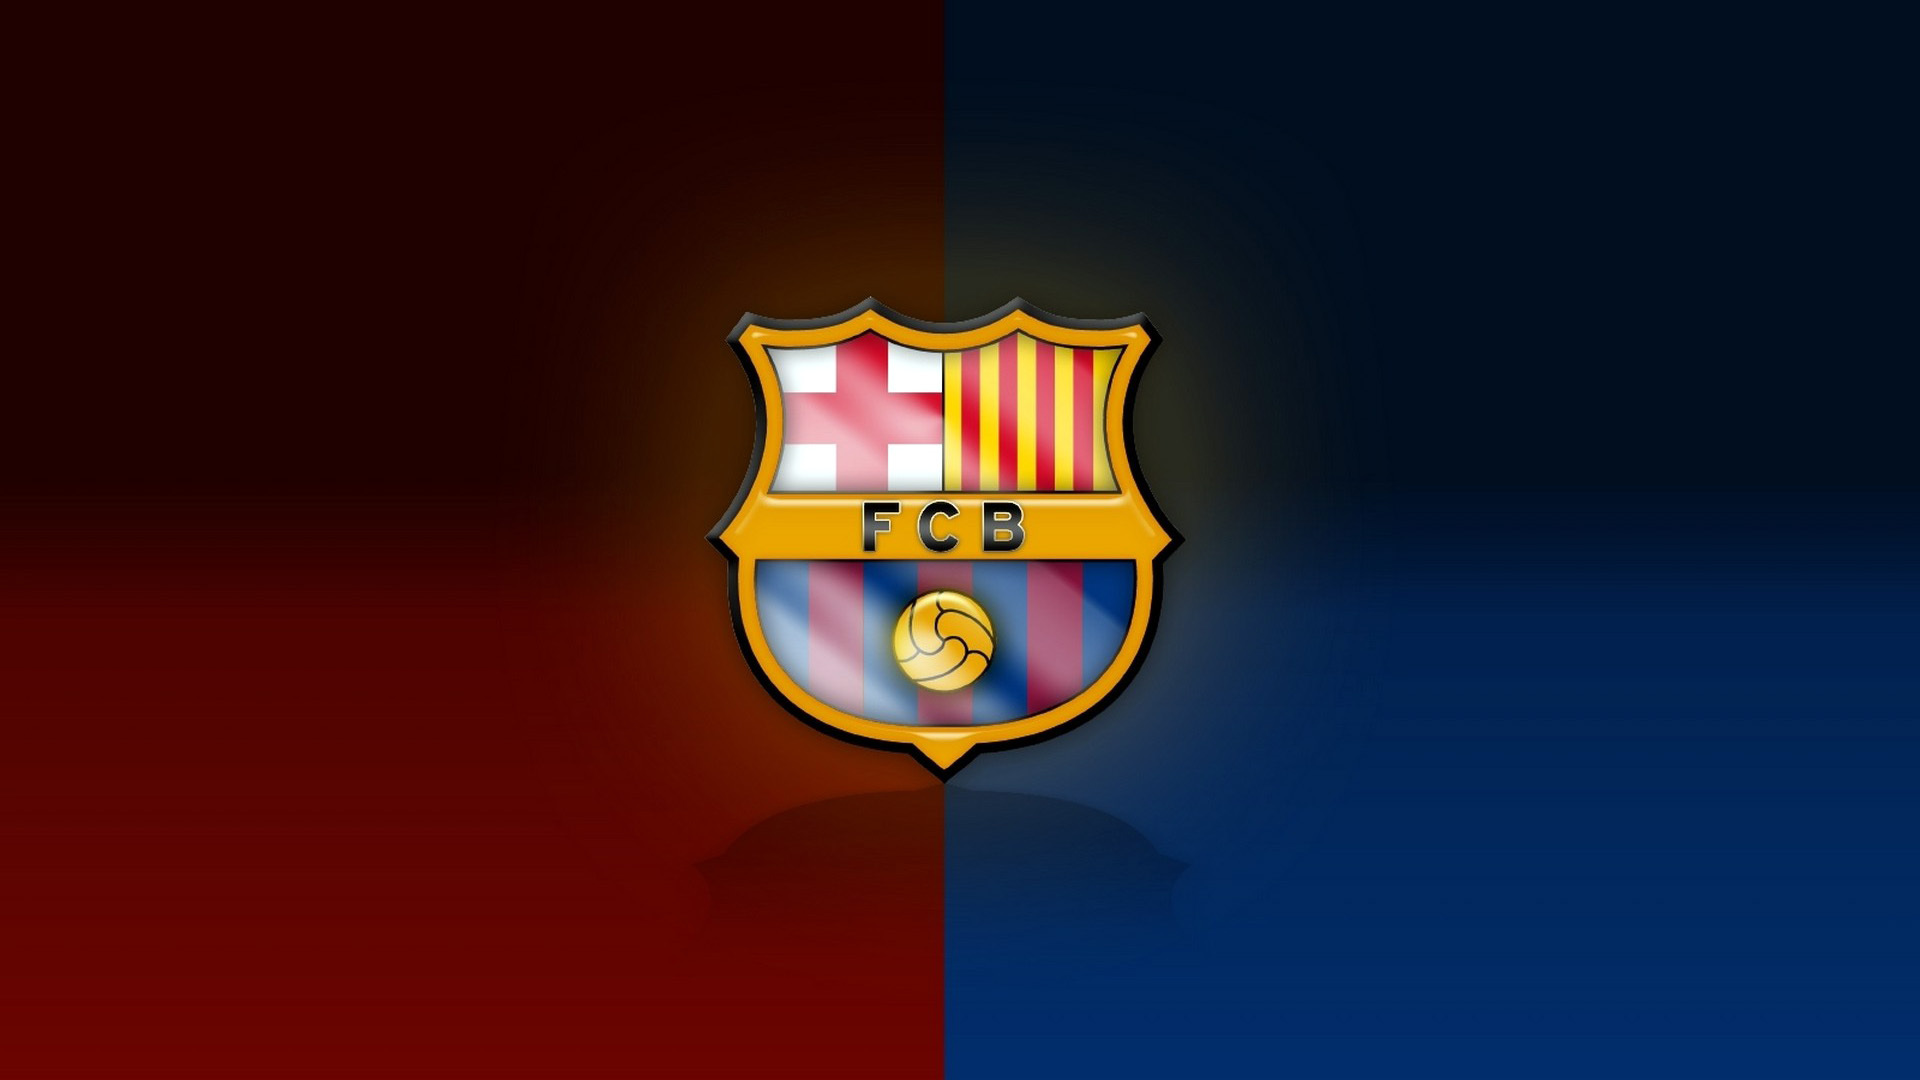 Fondos De Pantalla Del Fútbol Club Barcelona Wallpapers: FC Barcelona Wallpapers Images Photos Pictures Backgrounds